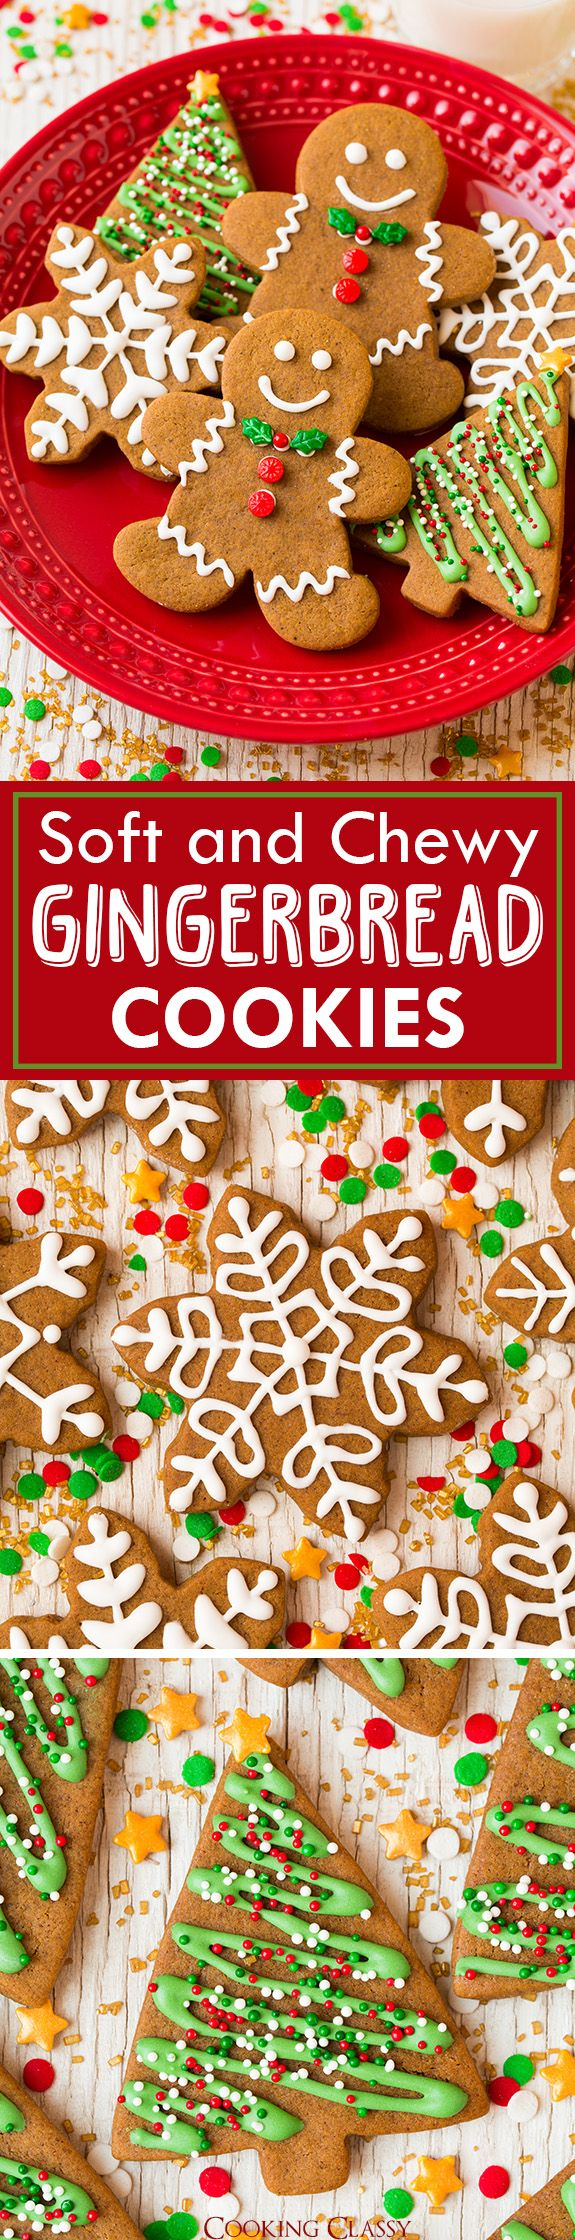 Gingerbread Cookies - A Christmas cookie must! Soft, gingery and utterly delicious! Even better the second day.